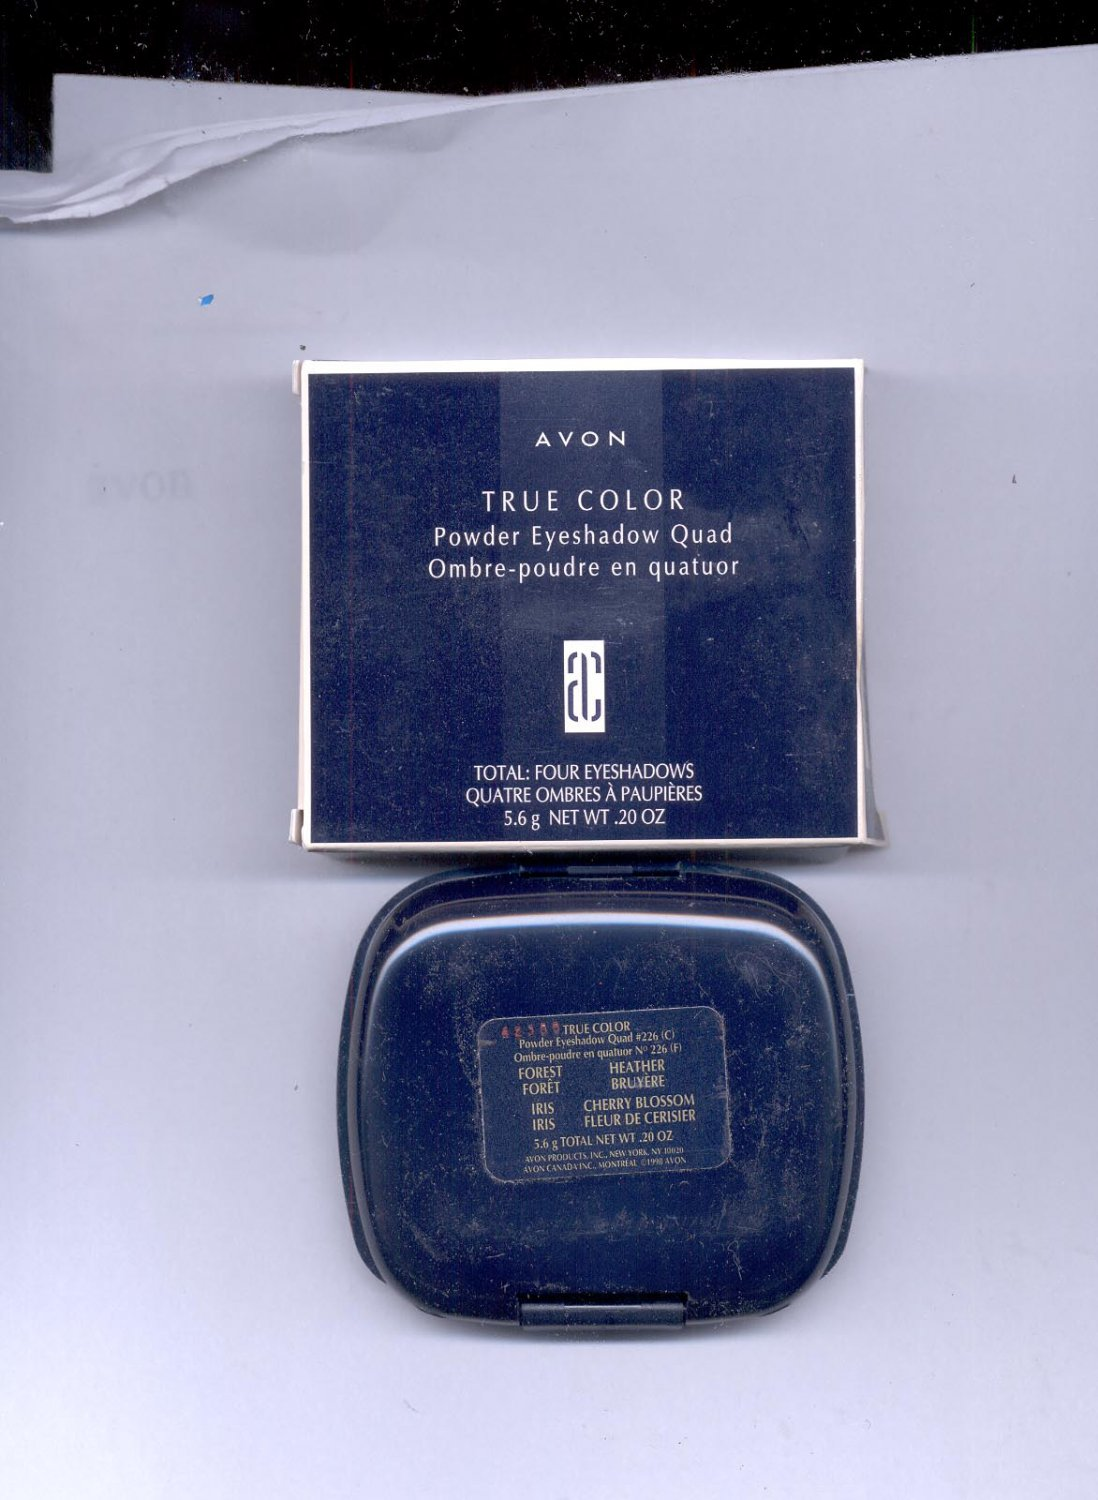 Avon True Color Powder Eyeshadow Quad # 226- Forest, Heather, Iris, Cherry Blossom- NOS